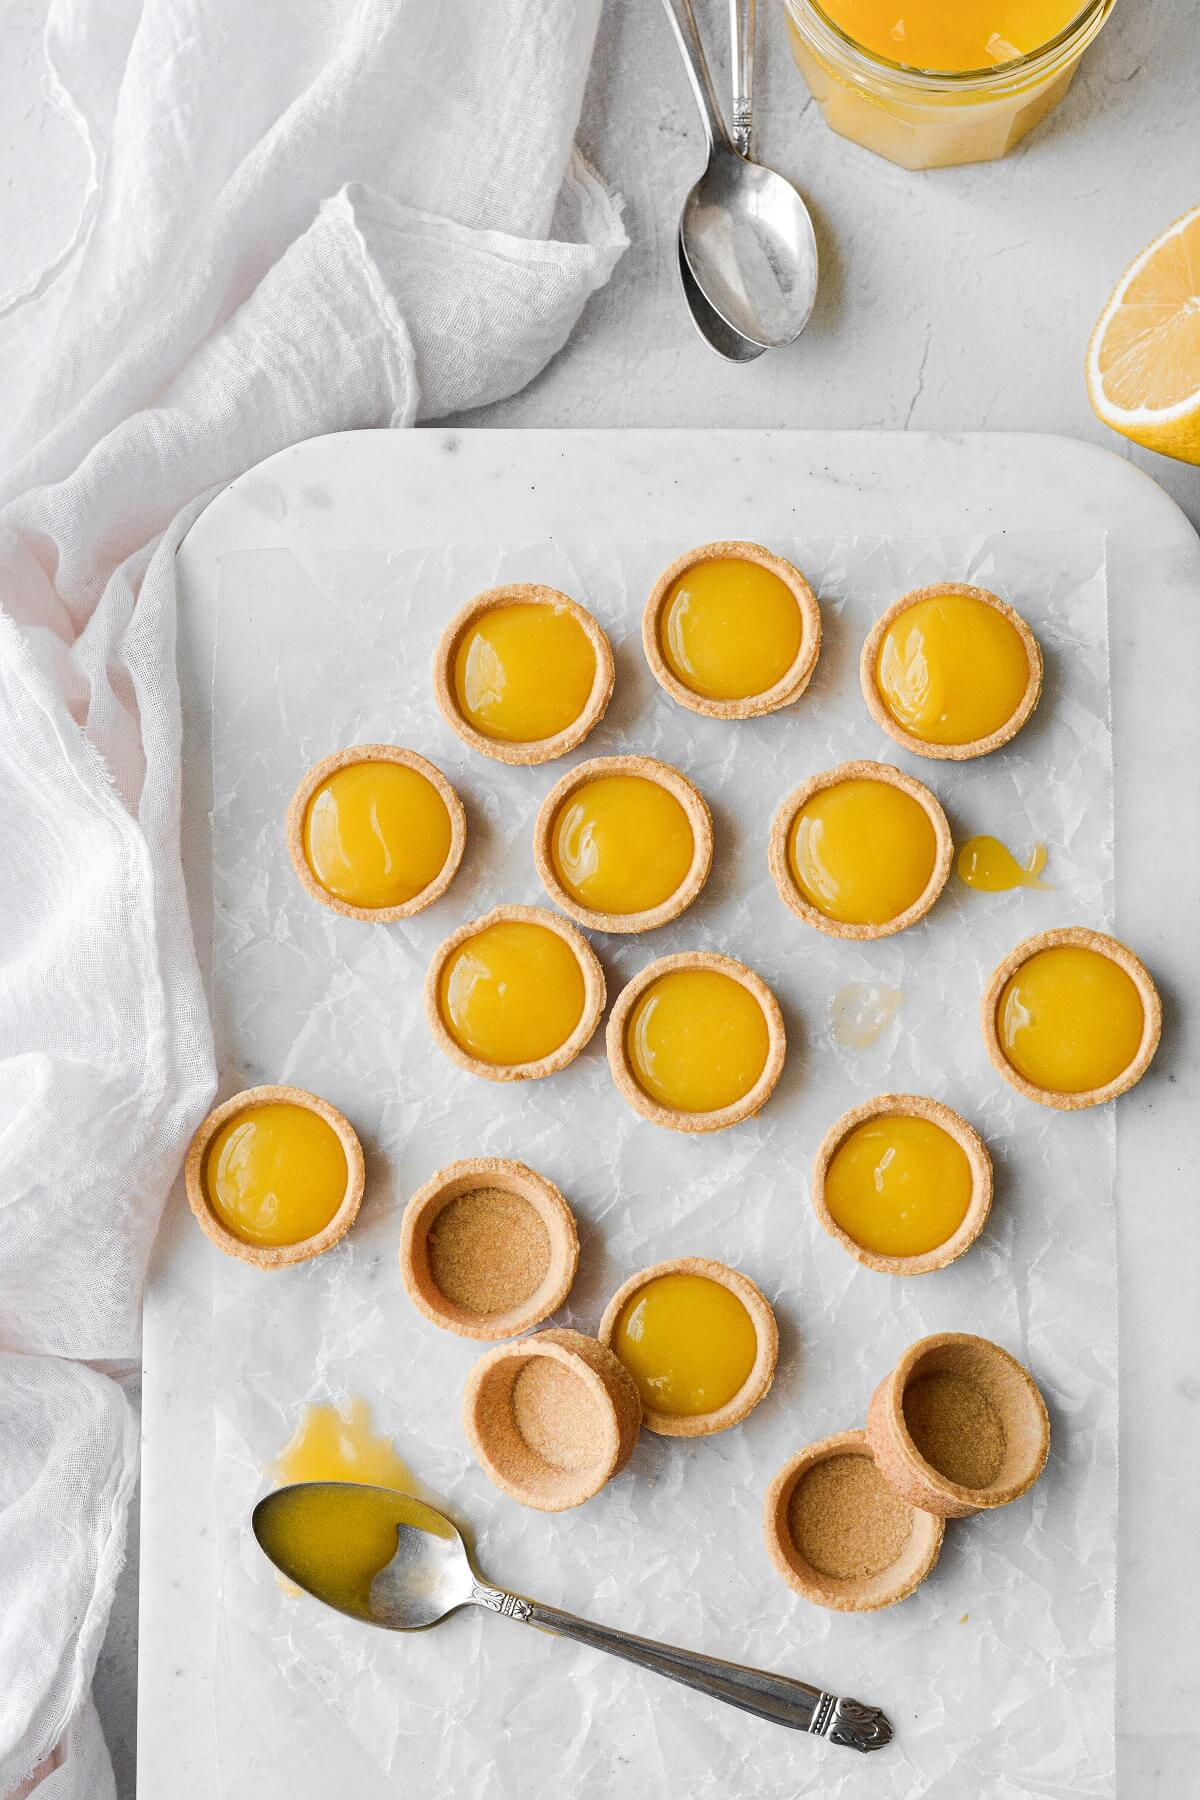 Mini pastry shells filled with homemade lemon curd.